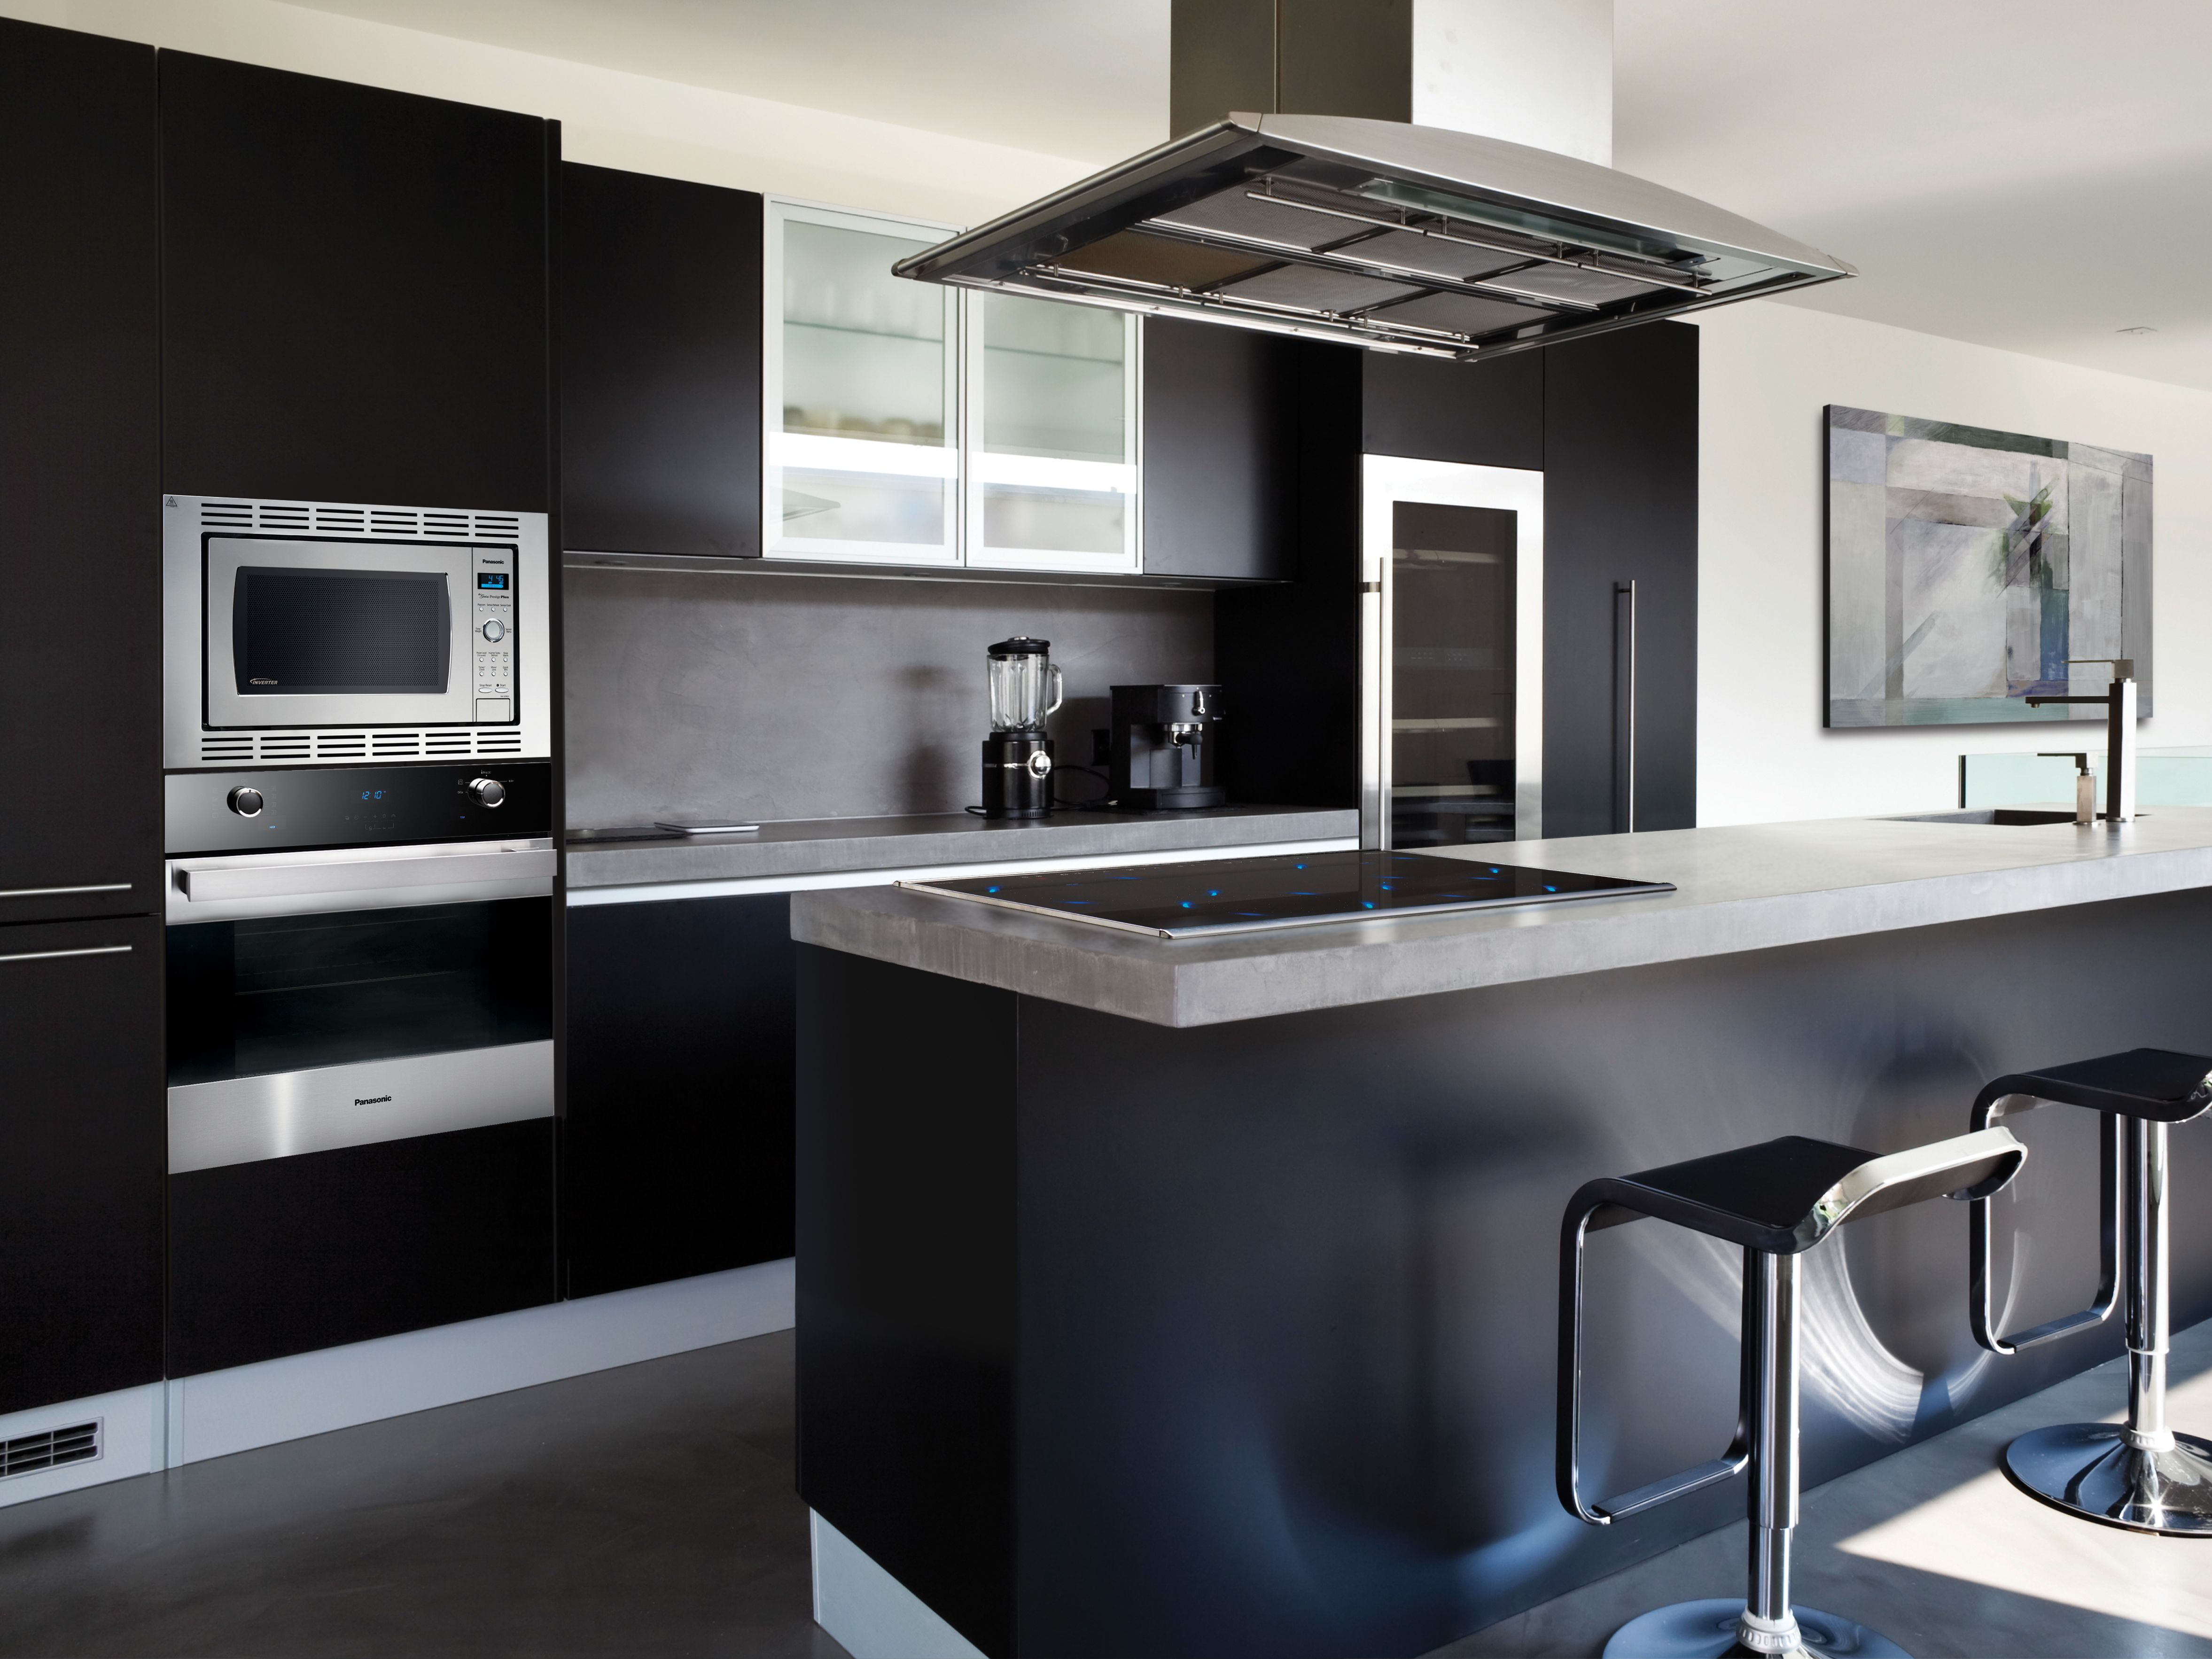 Pin On Modern Black Silver Kitchen